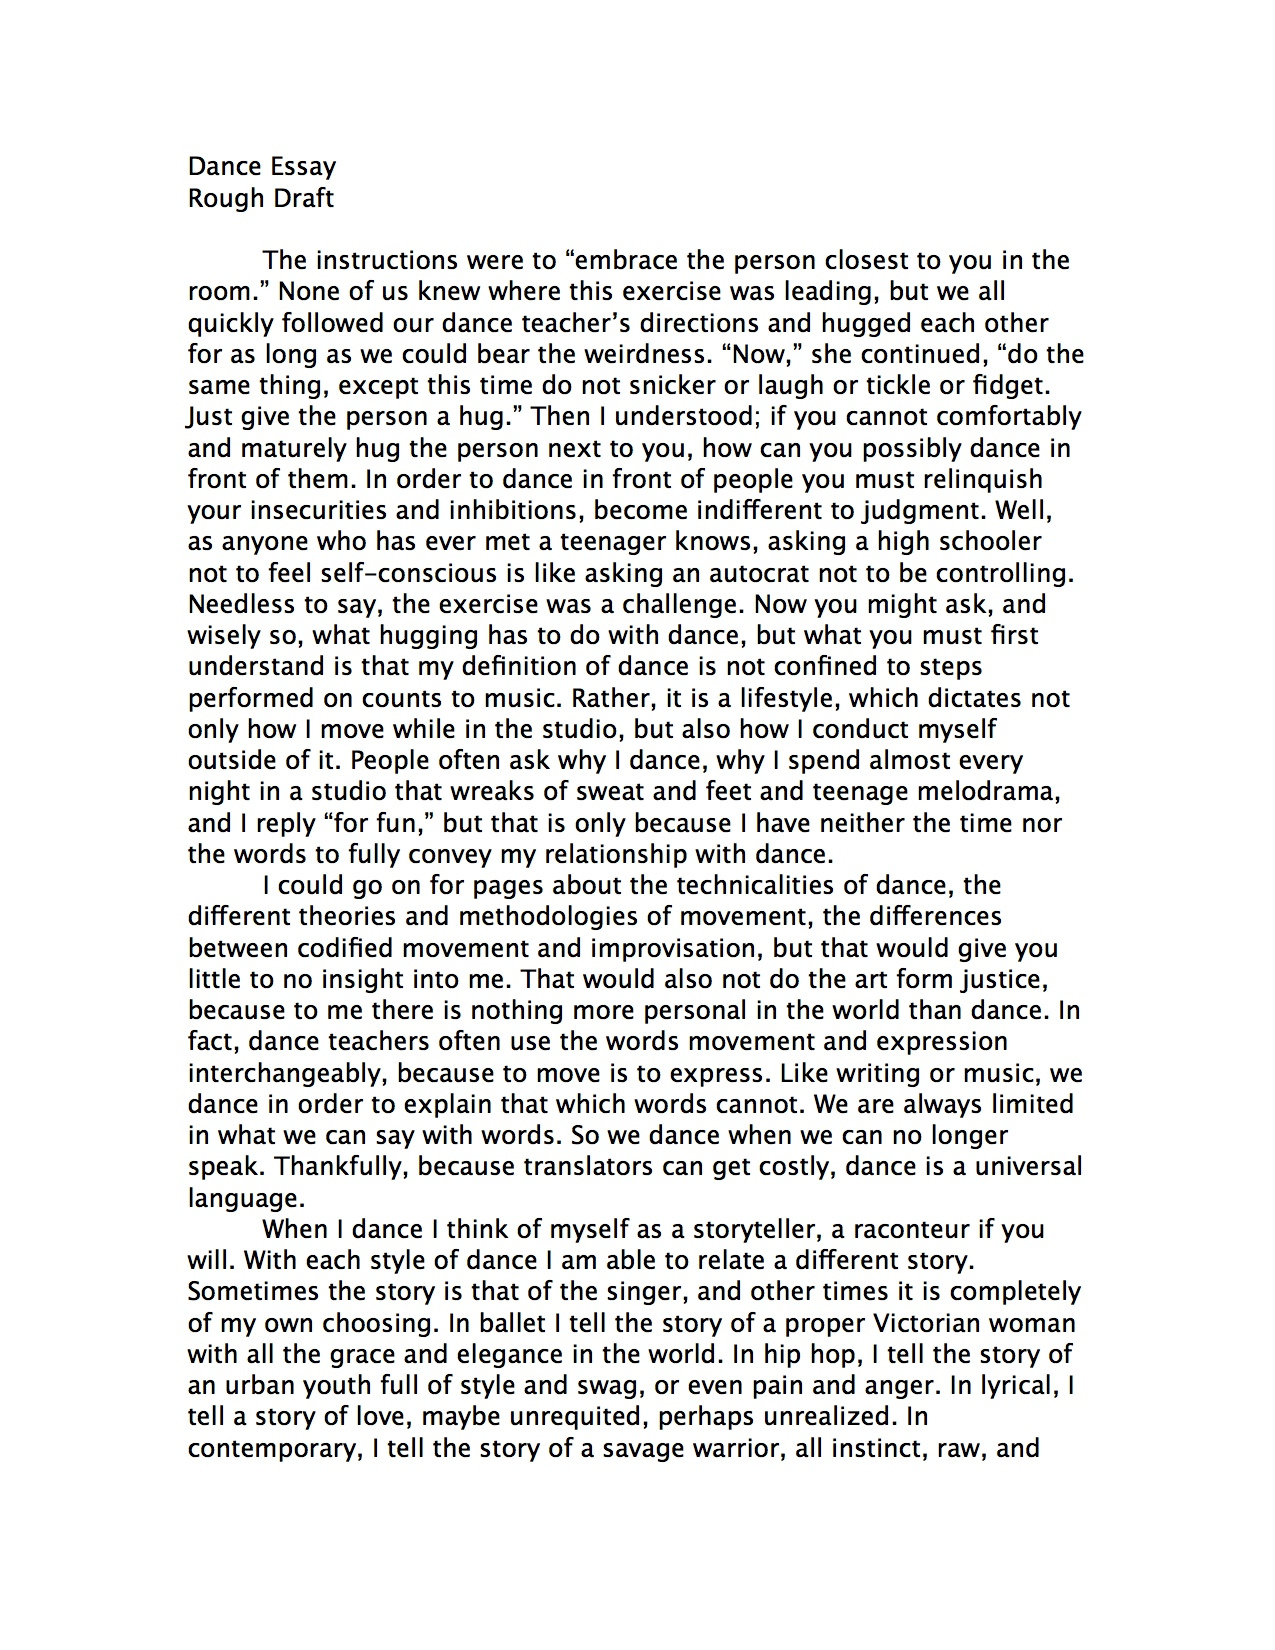 001 how to start college essay example proposal amazing essays